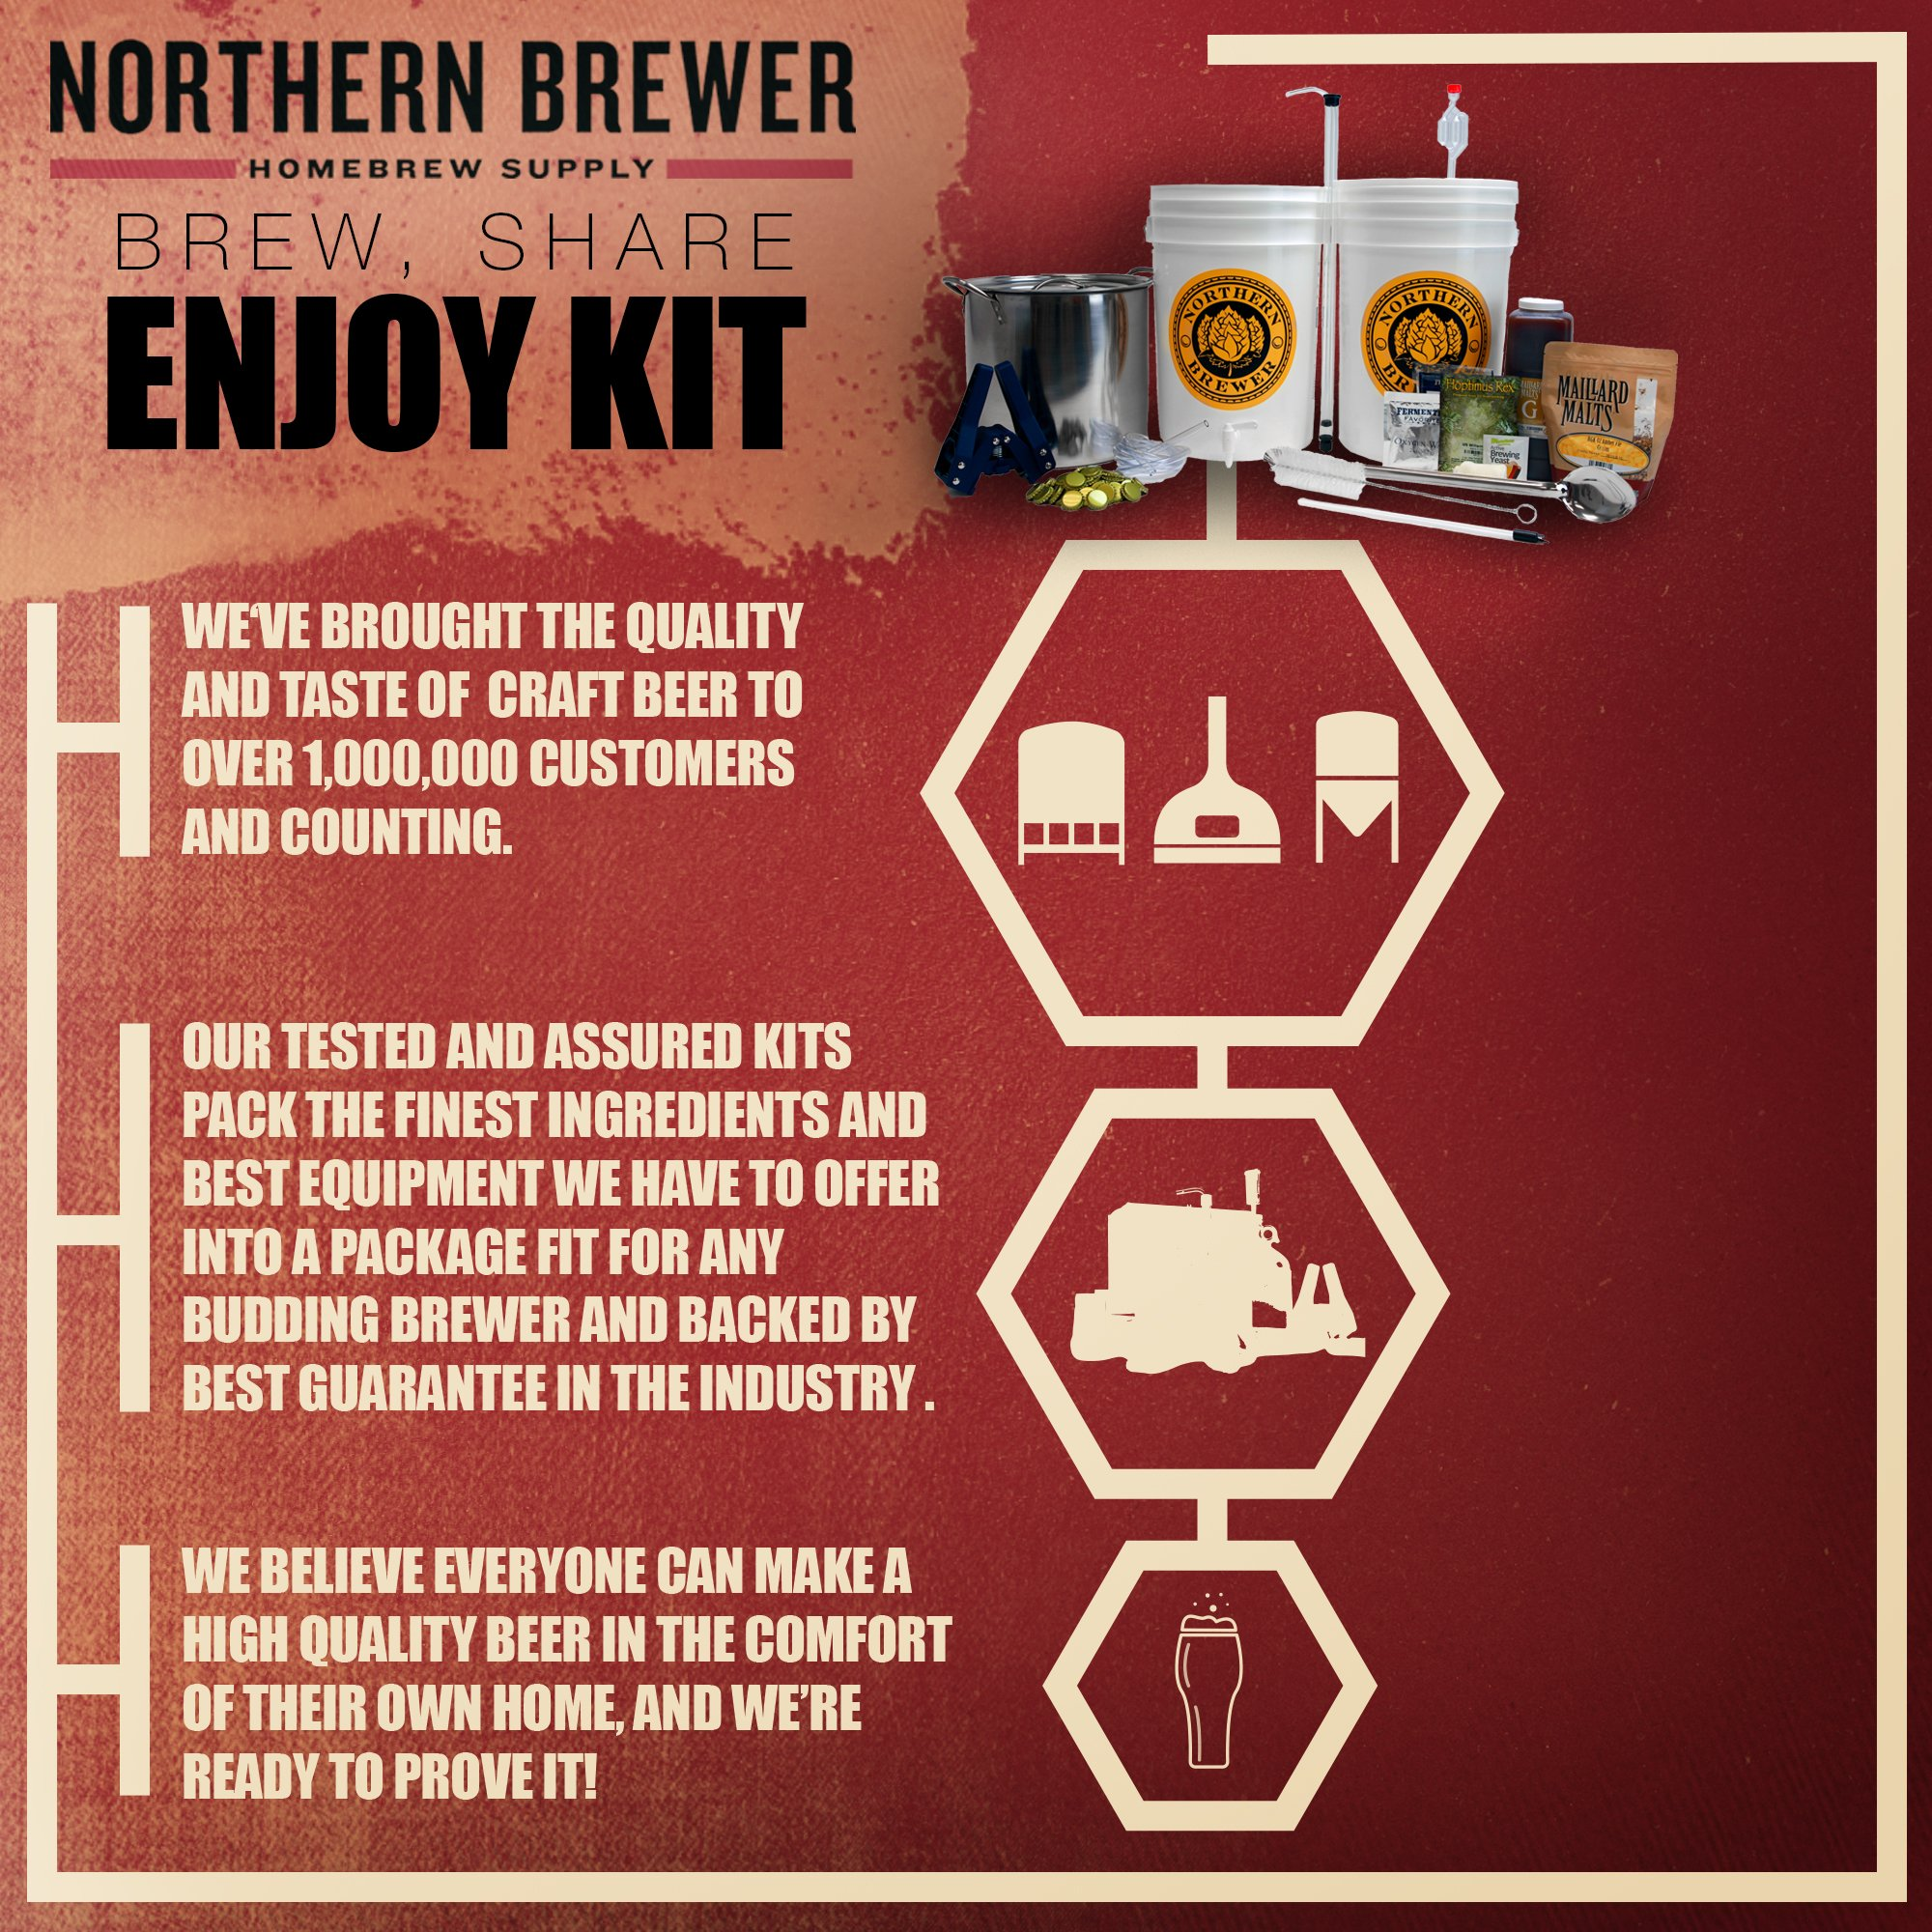 Northern Brewer - Brew. Share. Enjoy. Homebrew 5 Gallon Beer Brewing Starter Set Recipe Kit and Brew Kettle (Block Party Amber) by Northern Brewer (Image #9)